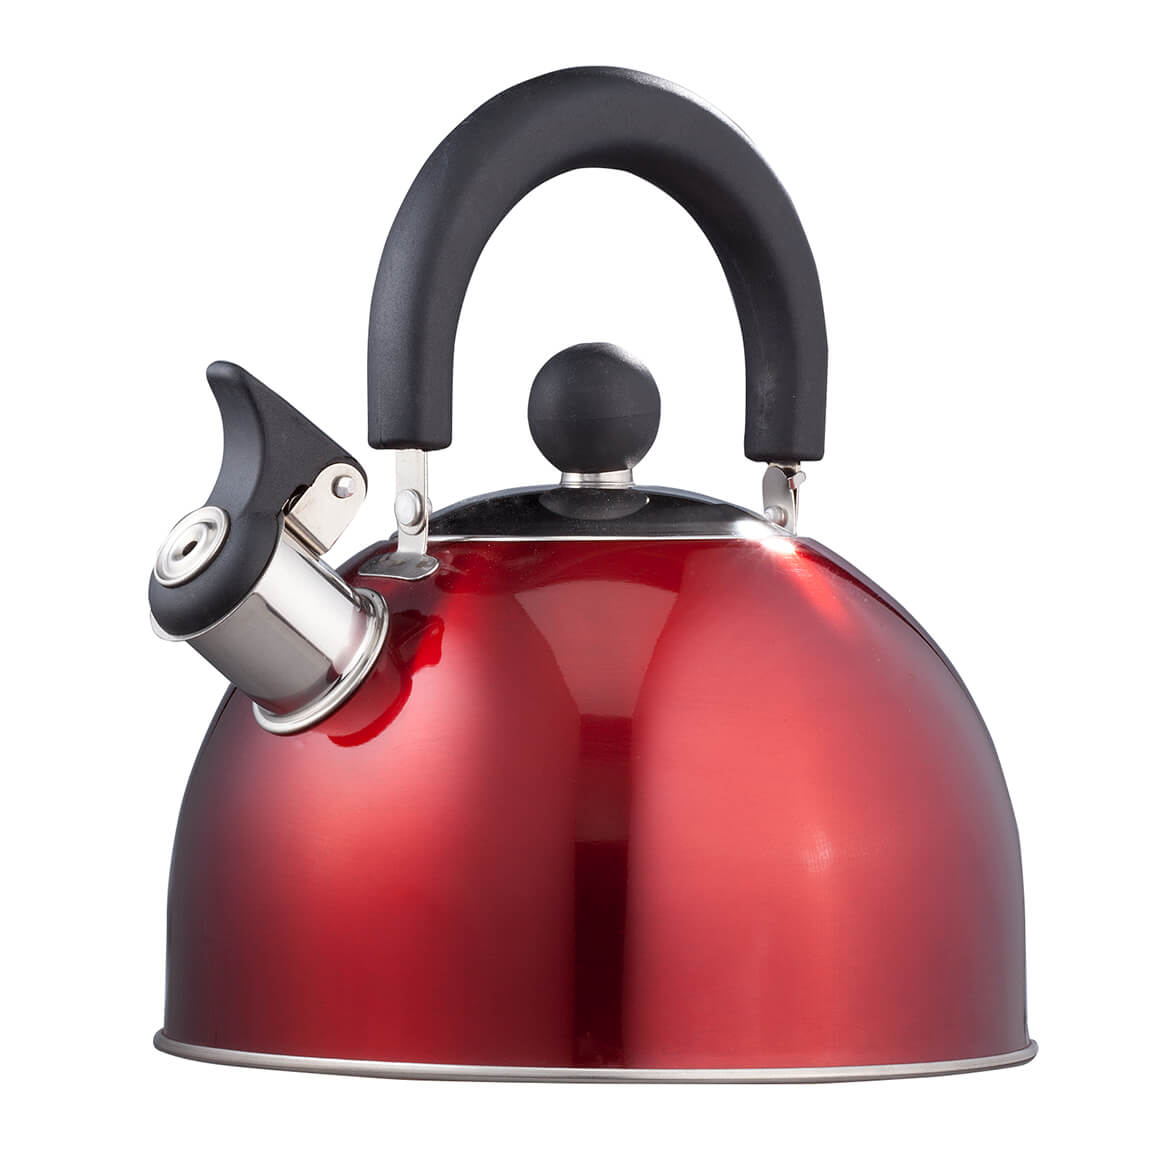 Red Whistling Tea Kettle by Home-Style Kitchen-353543